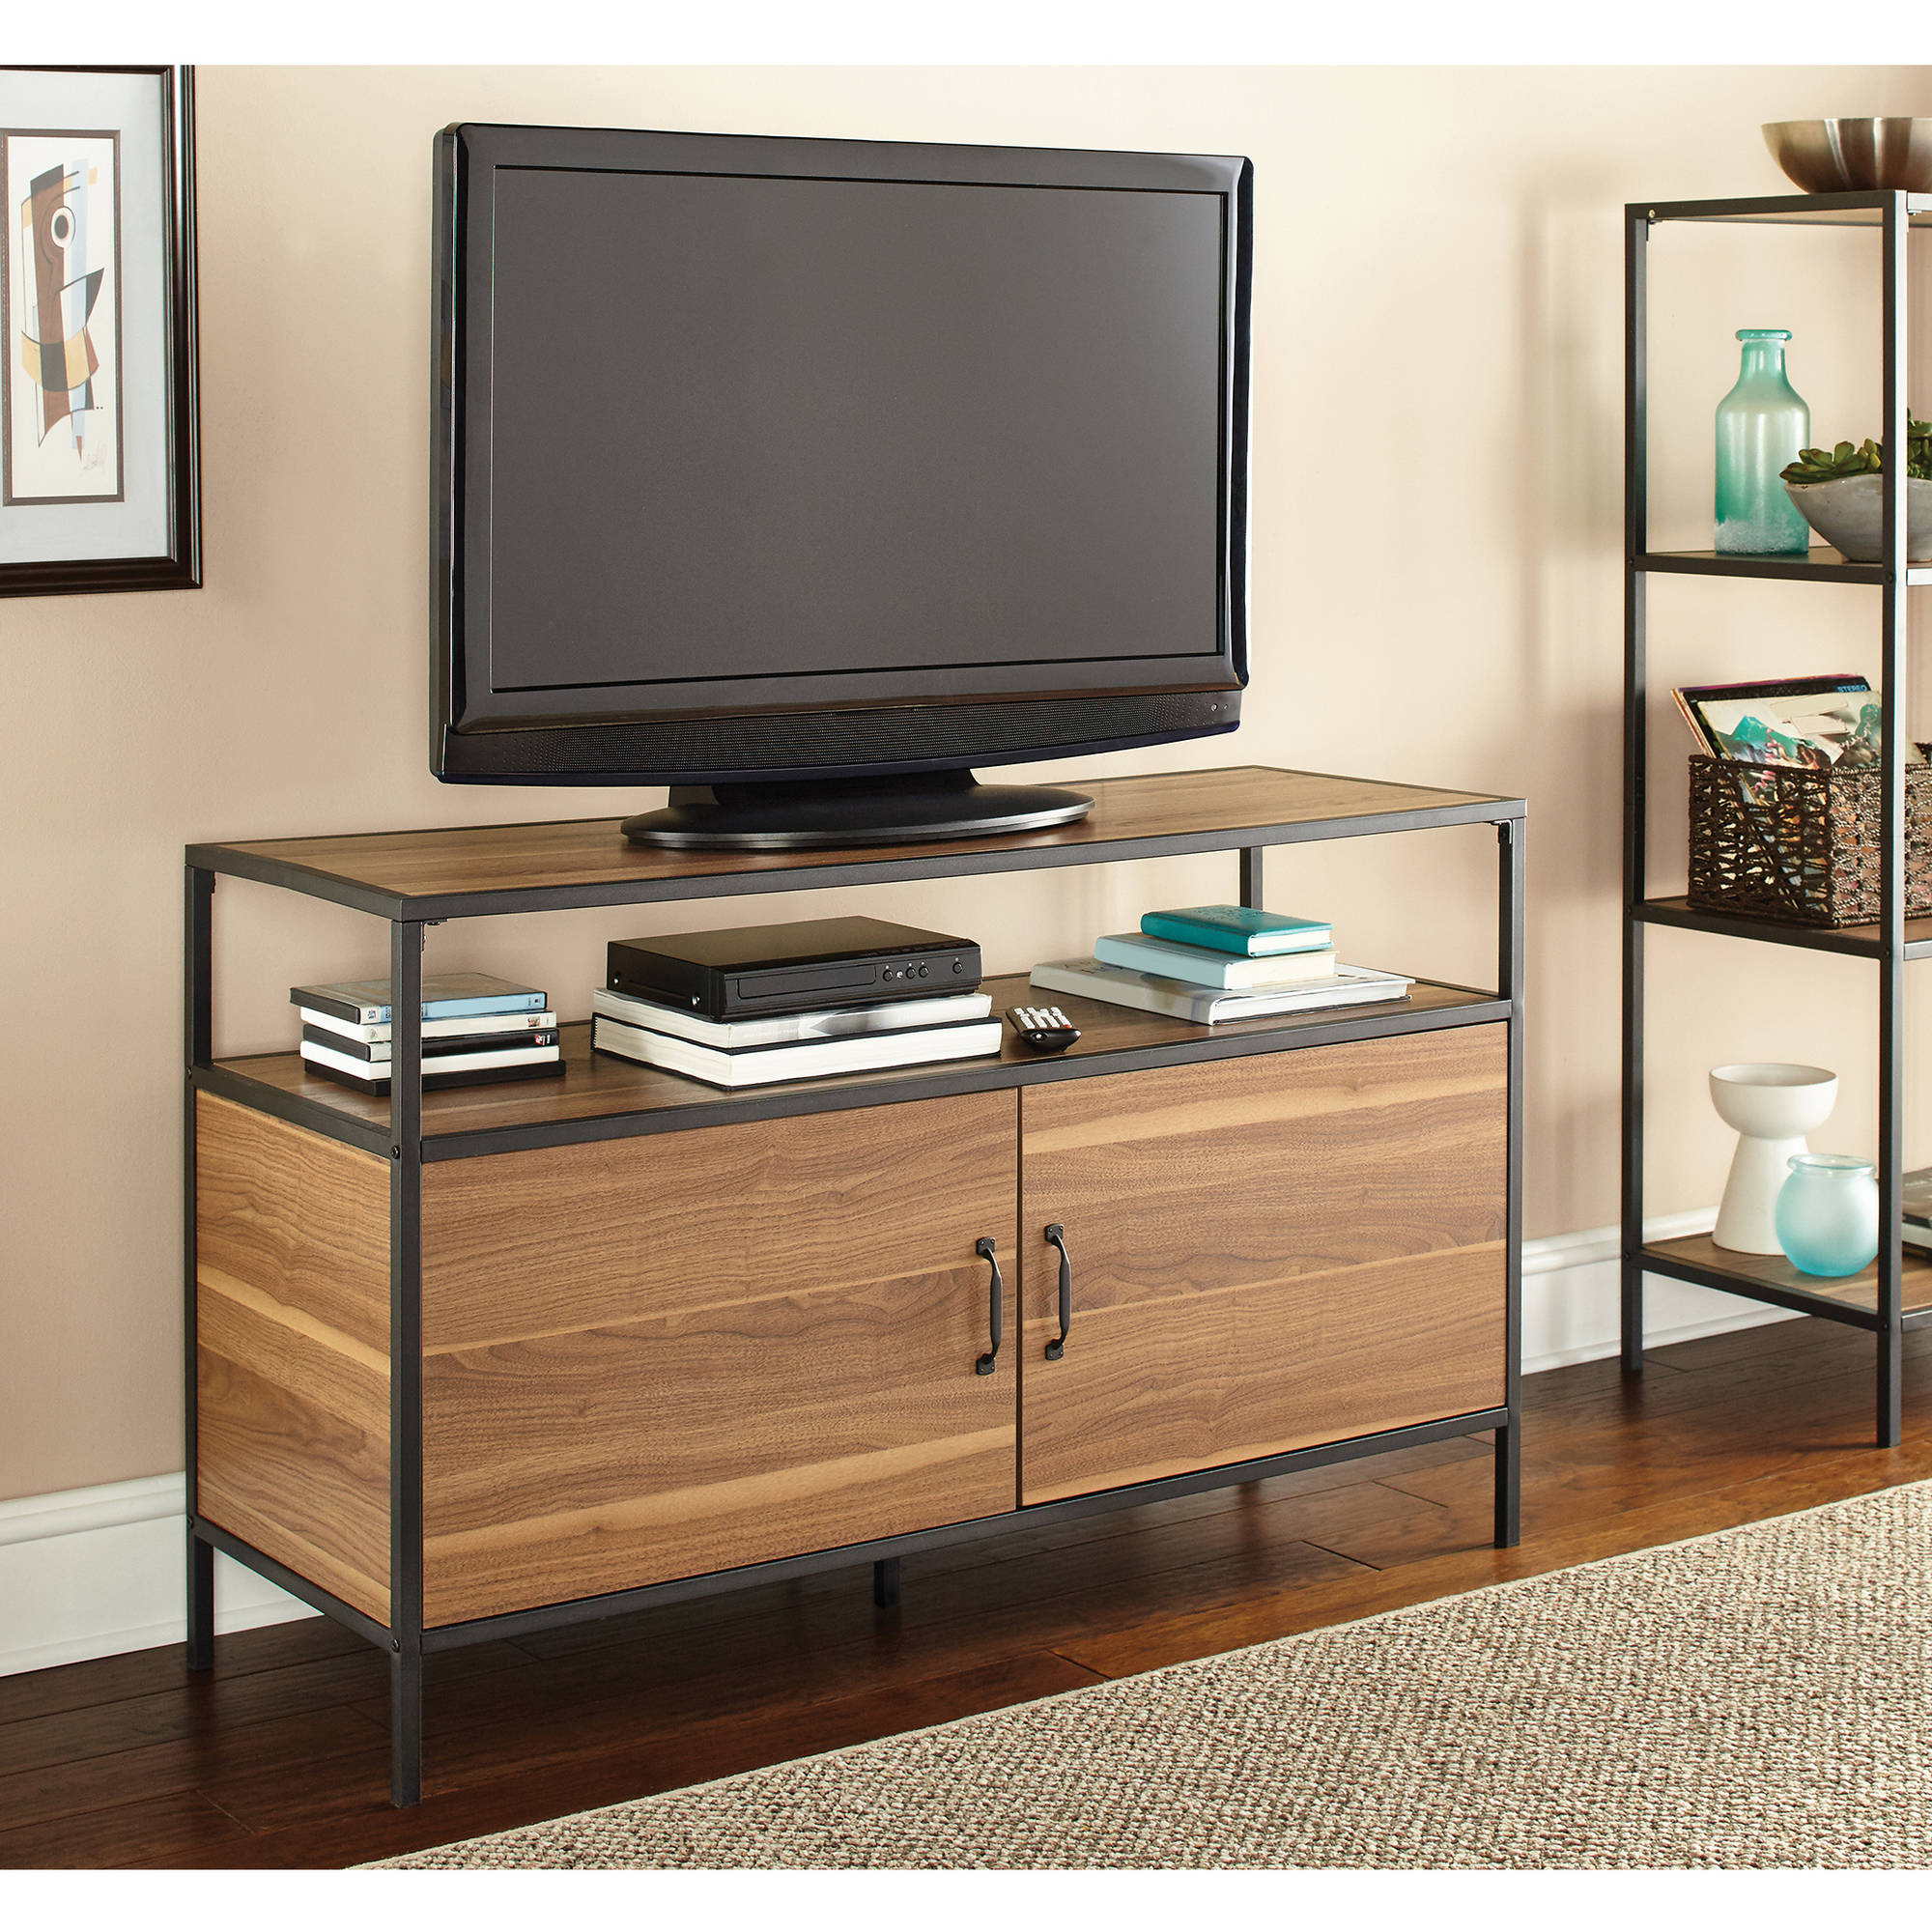 Mainstays Metro Tv Stand For Tvs Up To 50 Quot Multiple